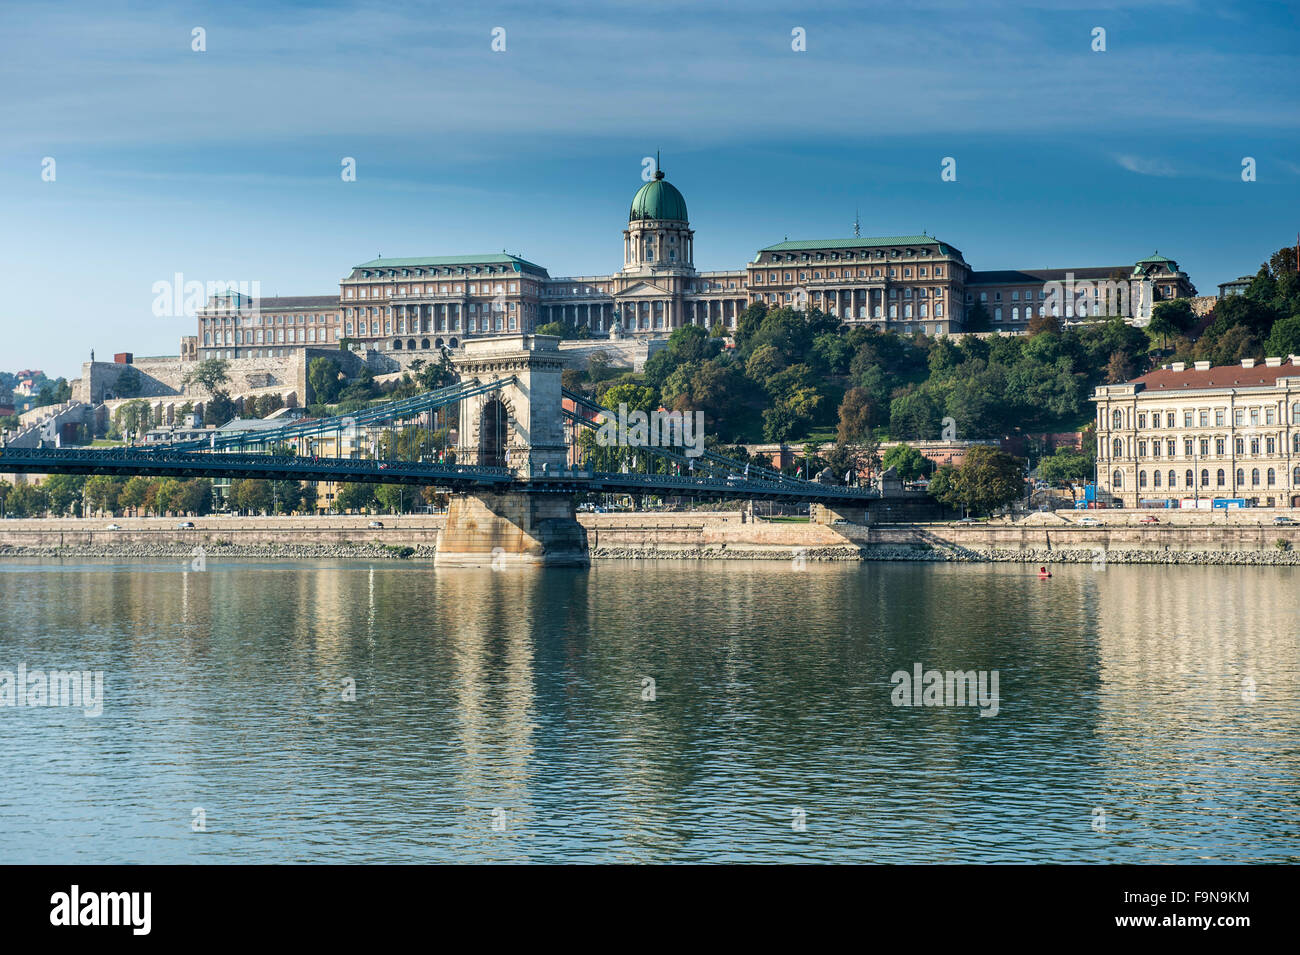 Panoramic view, Buda Castle and Széchenyi Lánchíd, Chain Bridge, Budapest, Hungary - Stock Image